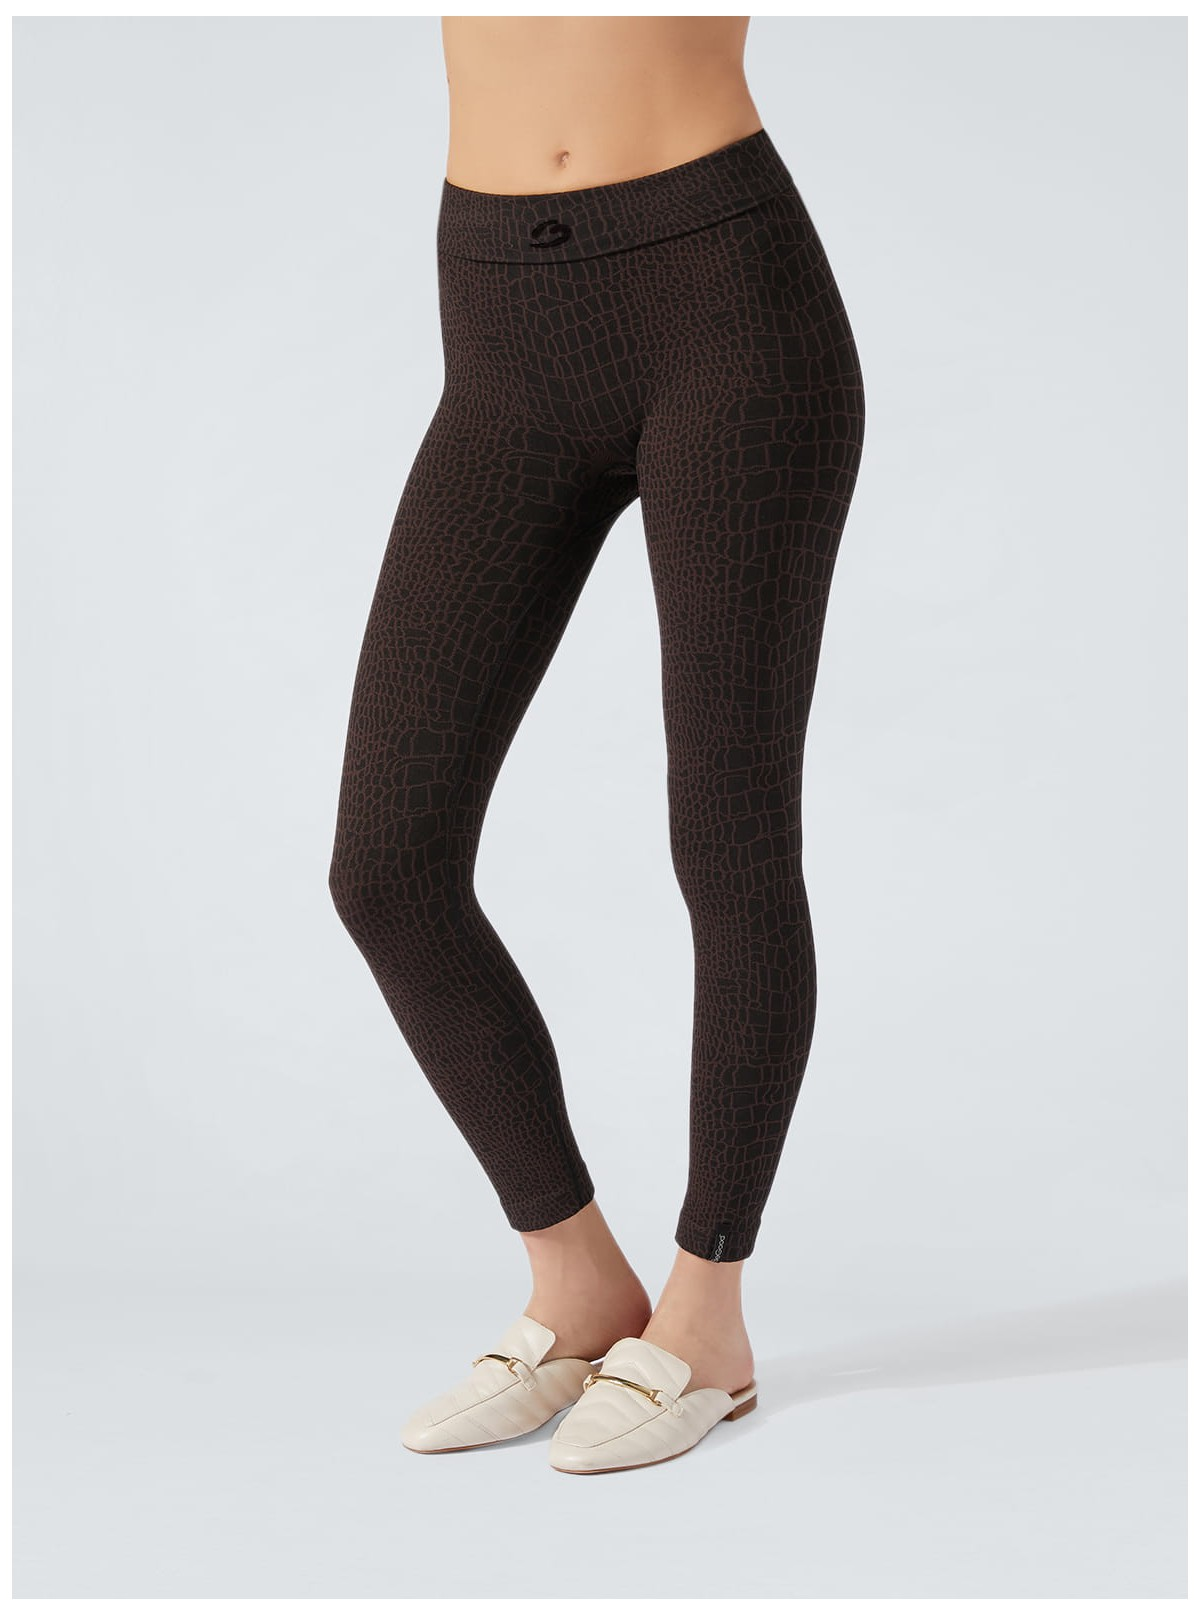 Legging Animalier Crocodile noir-marron amincissant et hydratant